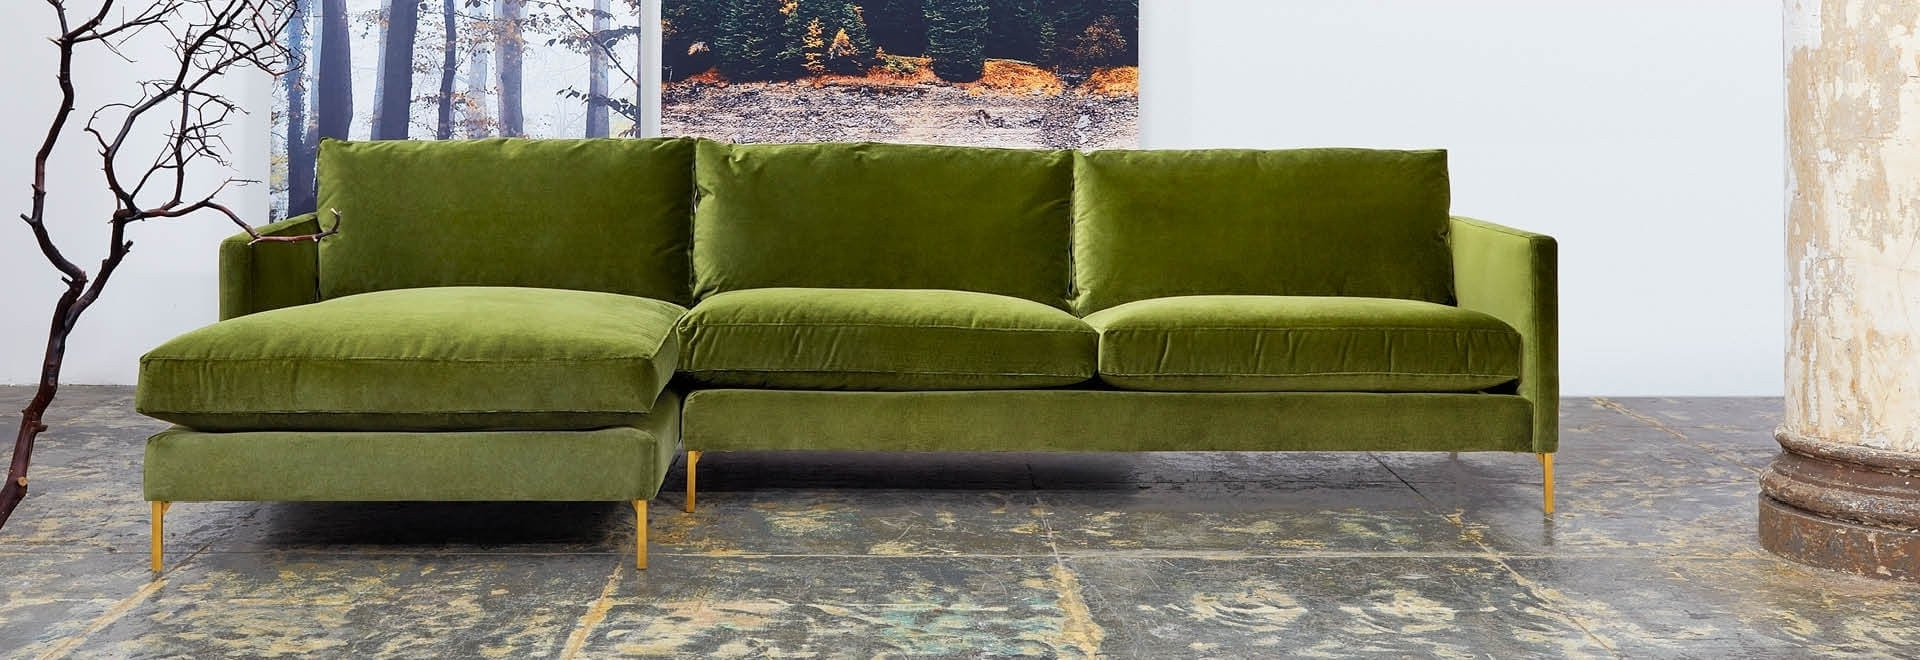 Nyc Sectional Sofas Throughout Best And Newest Modern Sectional Sofas For Nyc Apartments At Abc Home (View 16 of 20)